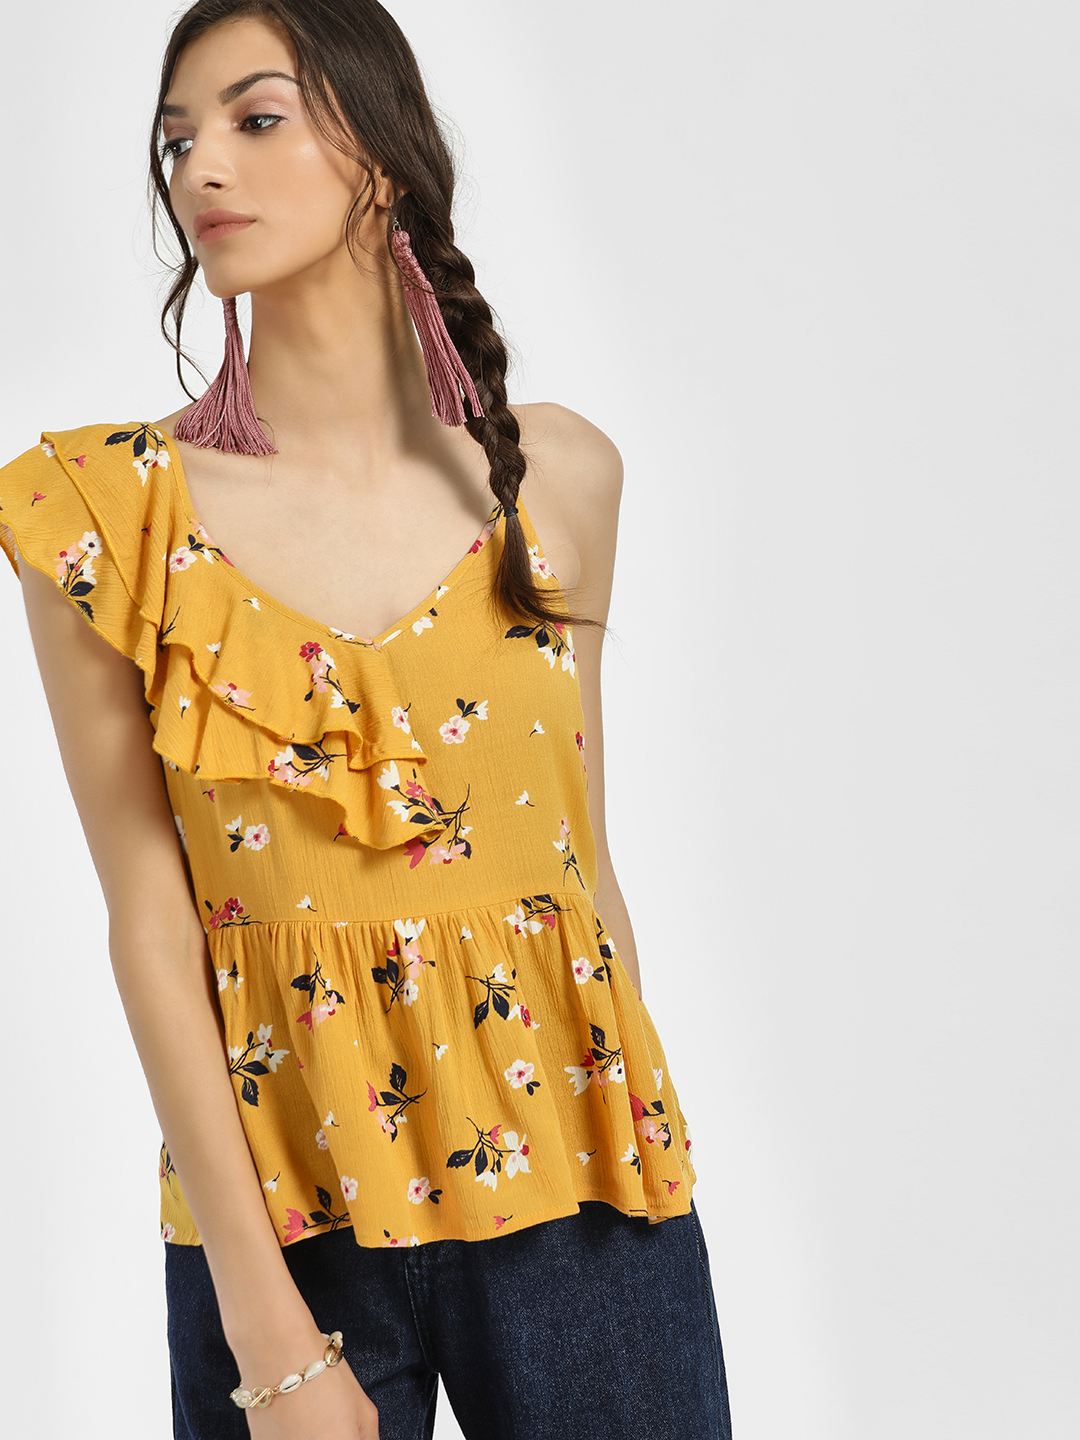 Rena Love Yellow Floral Print One Shoulder Blouse 1